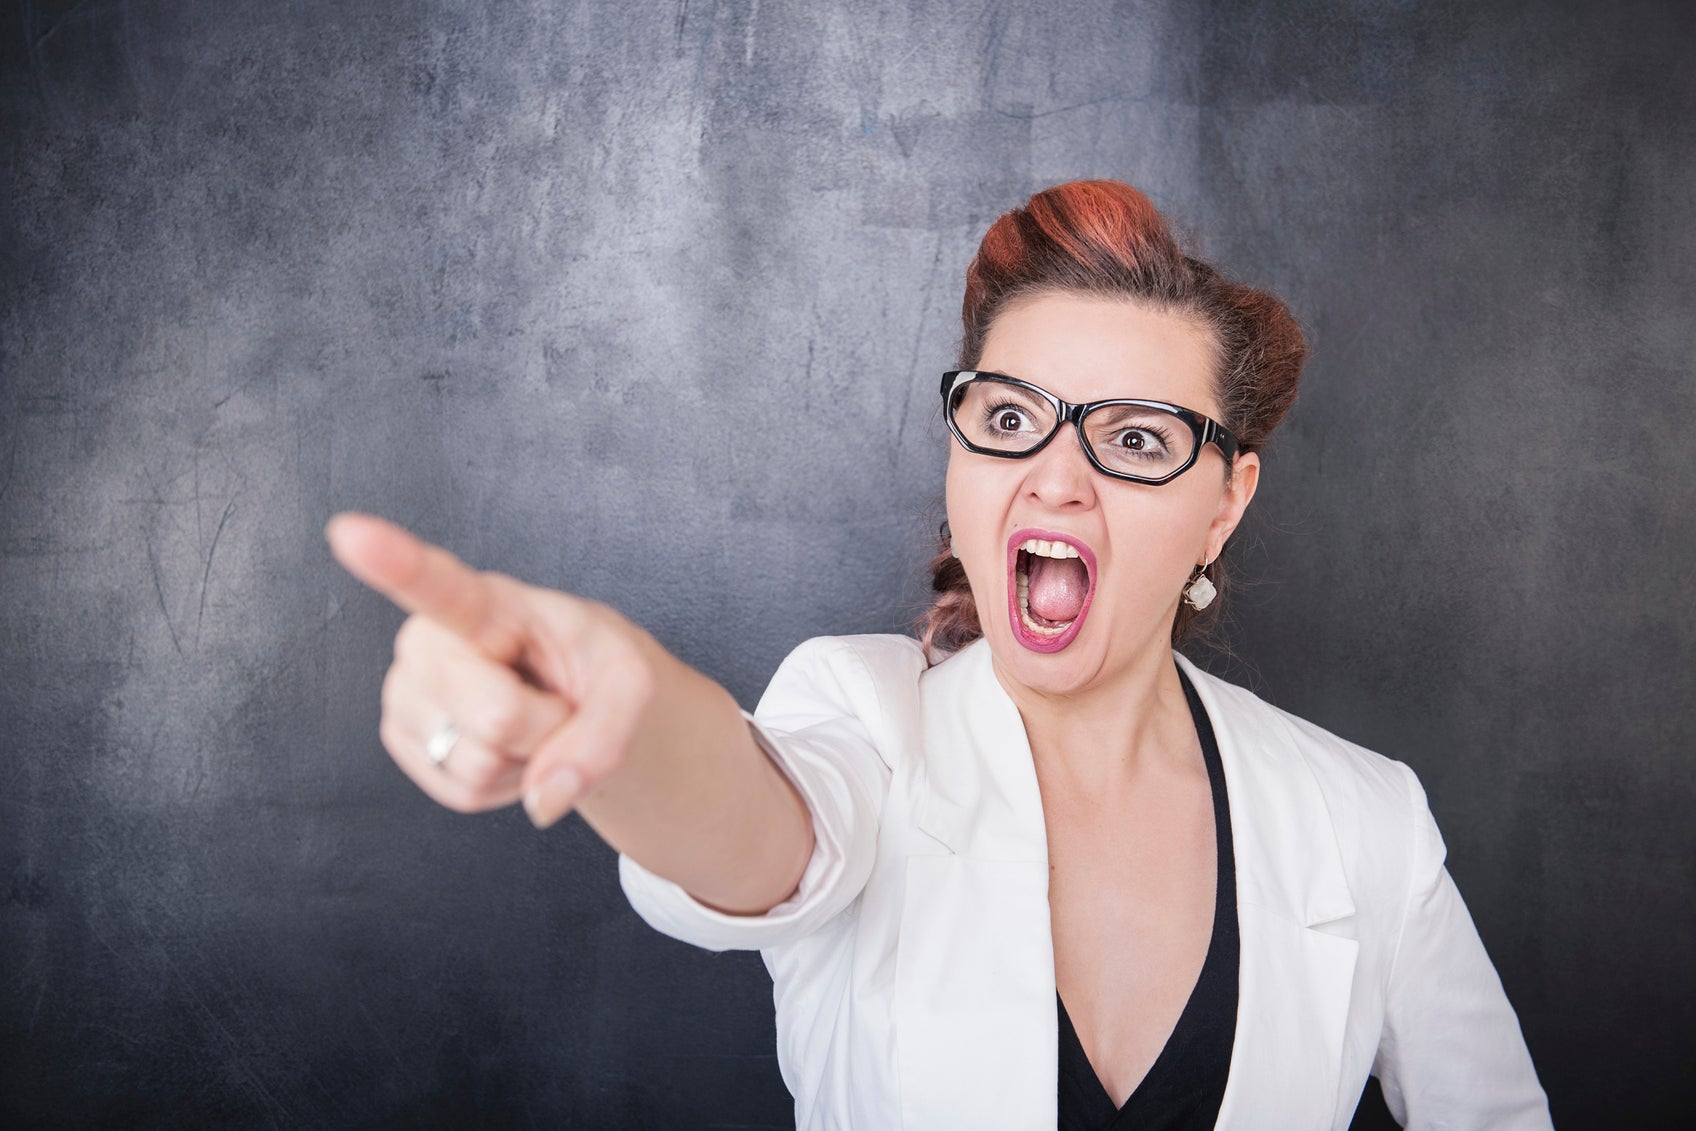 14 long-lost English swear words ranked in order of offensiveness